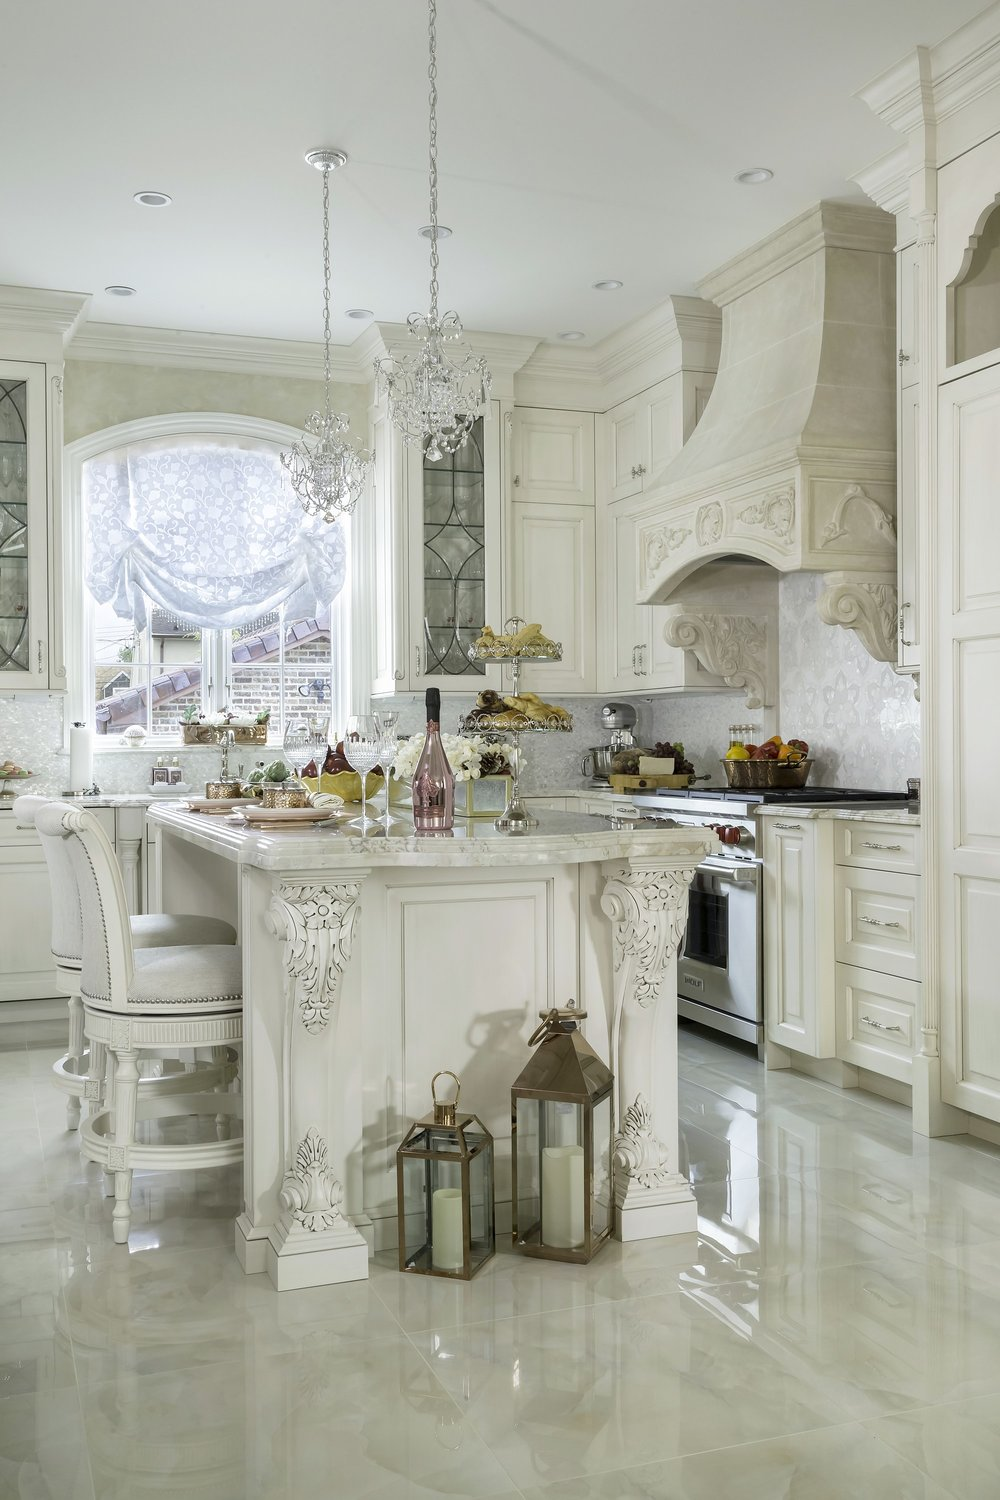 Traditional style kitchen with two small crystal chandeliers